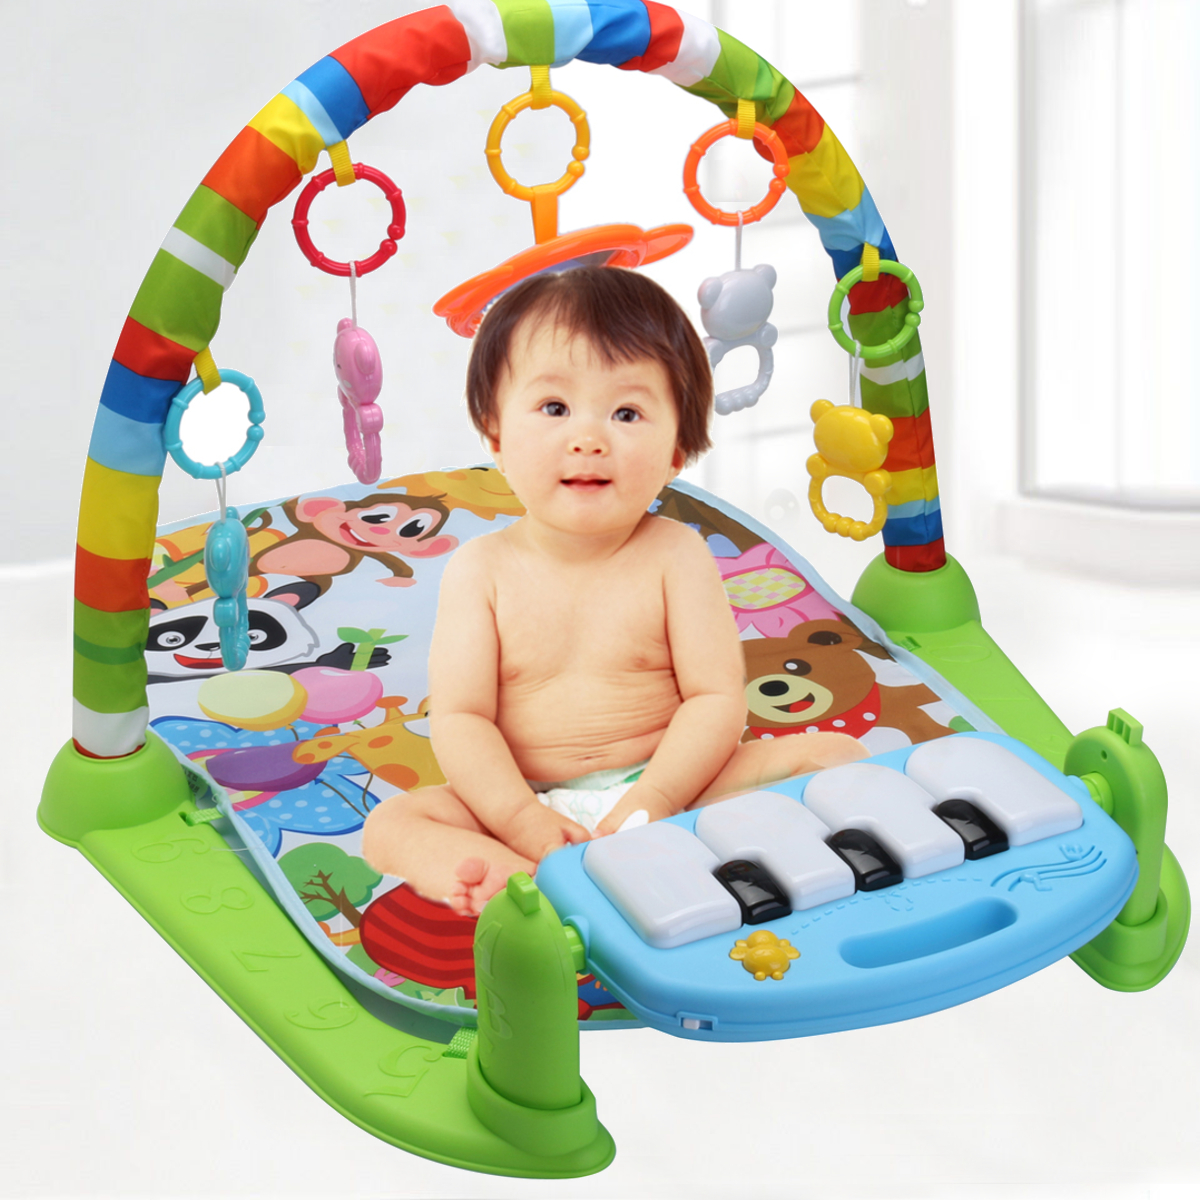 JN_ 4 in 1 Baby Gym Floor Play Mat Blanket Pedal Piano Musical Kick Play Toy H Baby Gear